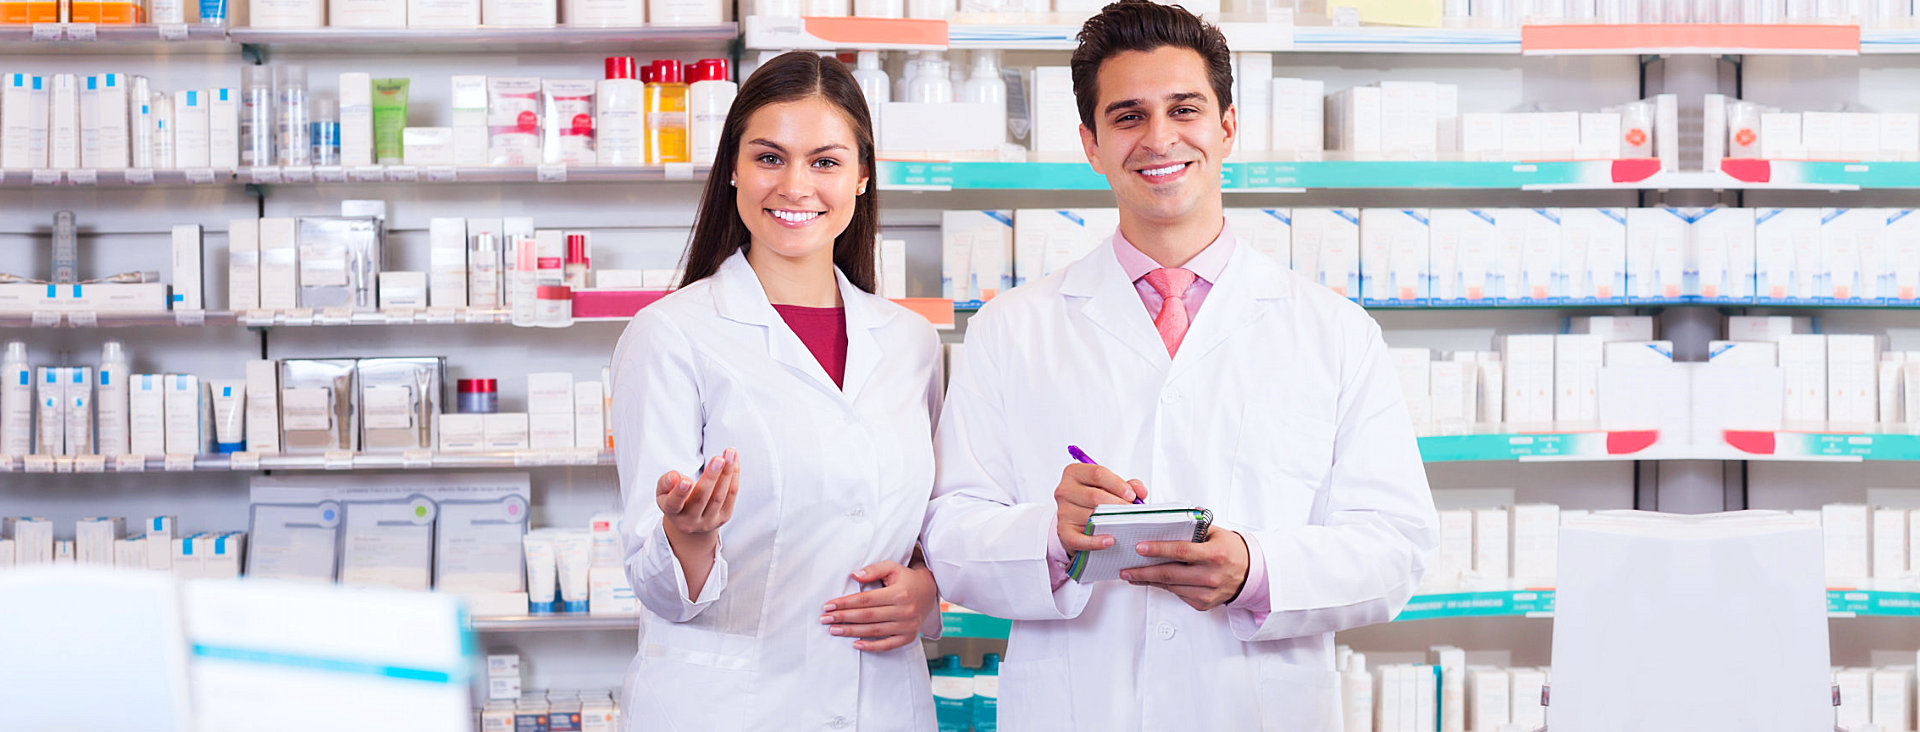 man and woman pharmacist smiling